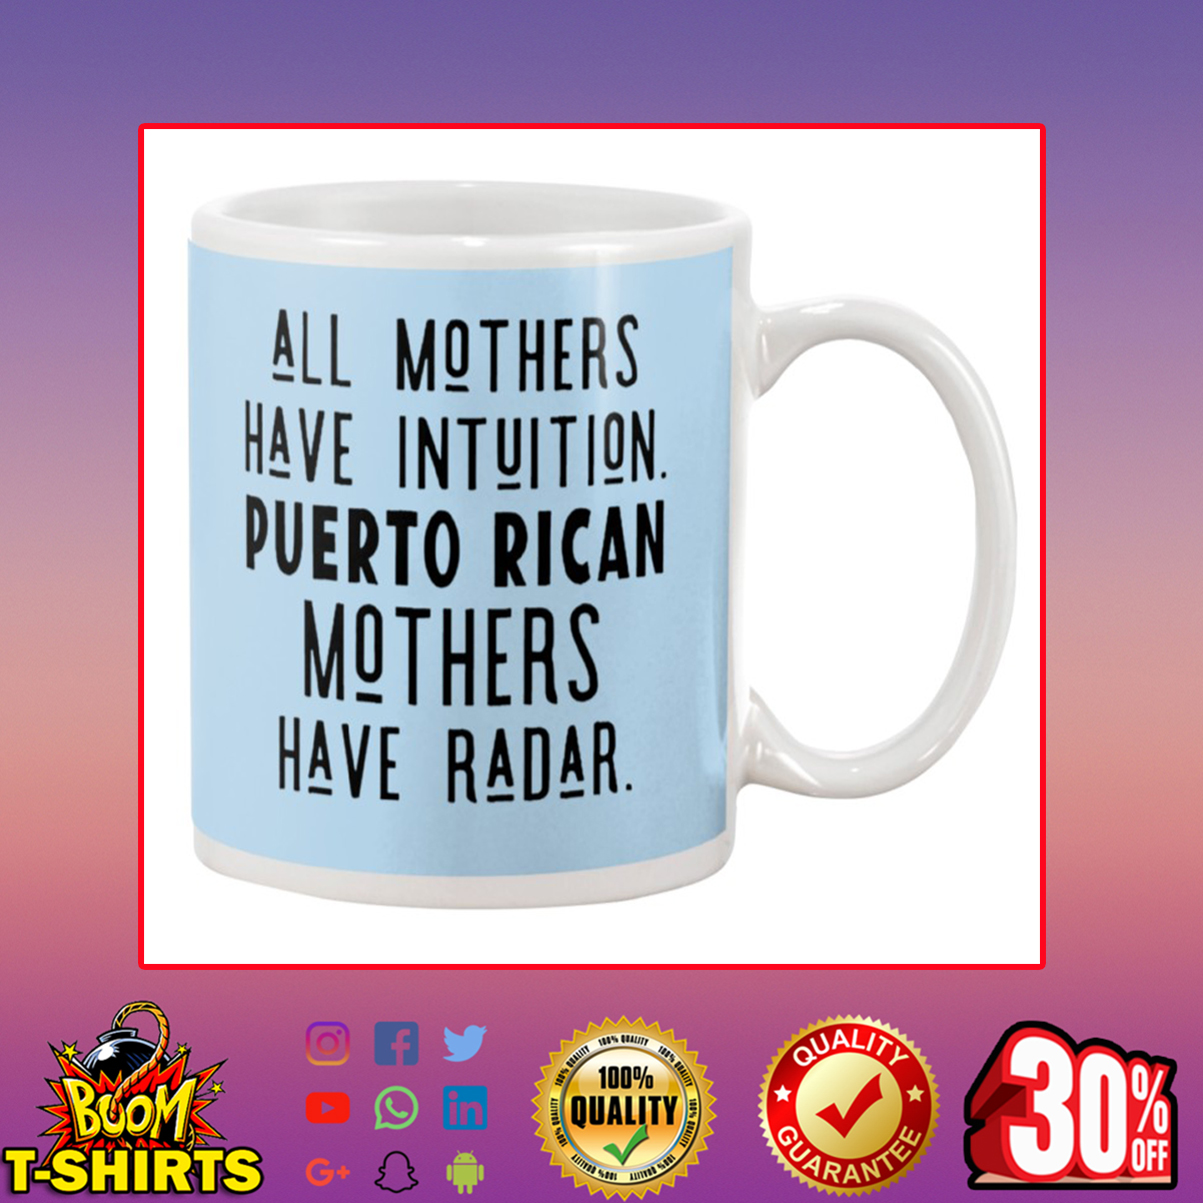 All Mothers Have Intuition Puerto Rican Mothers Have Radar Mug - blue